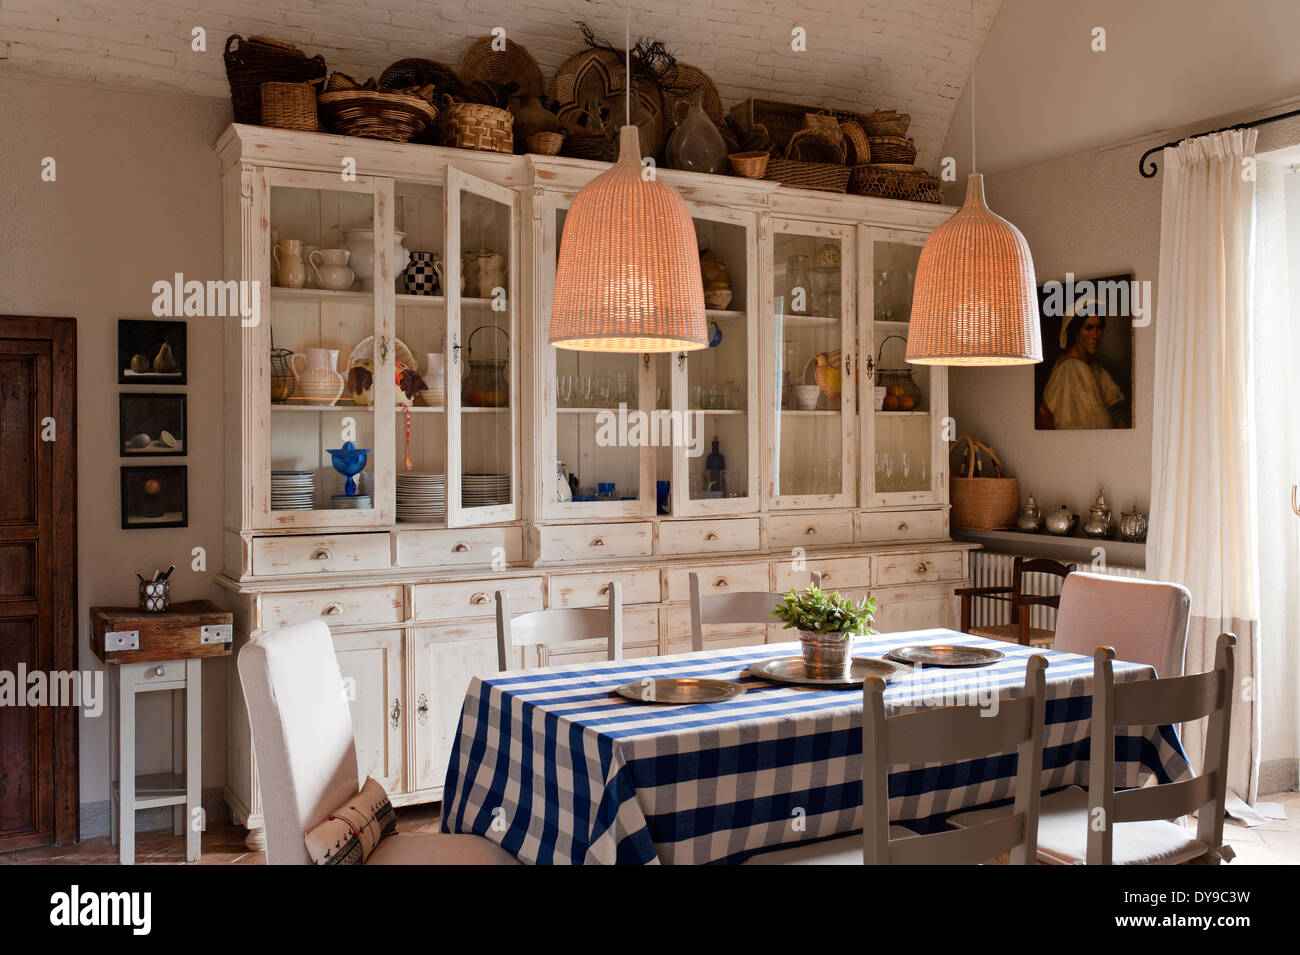 Rustic country kitchen with French style cabinets, checked blue tablecloth and woven wicker pendant lights - Stock Image